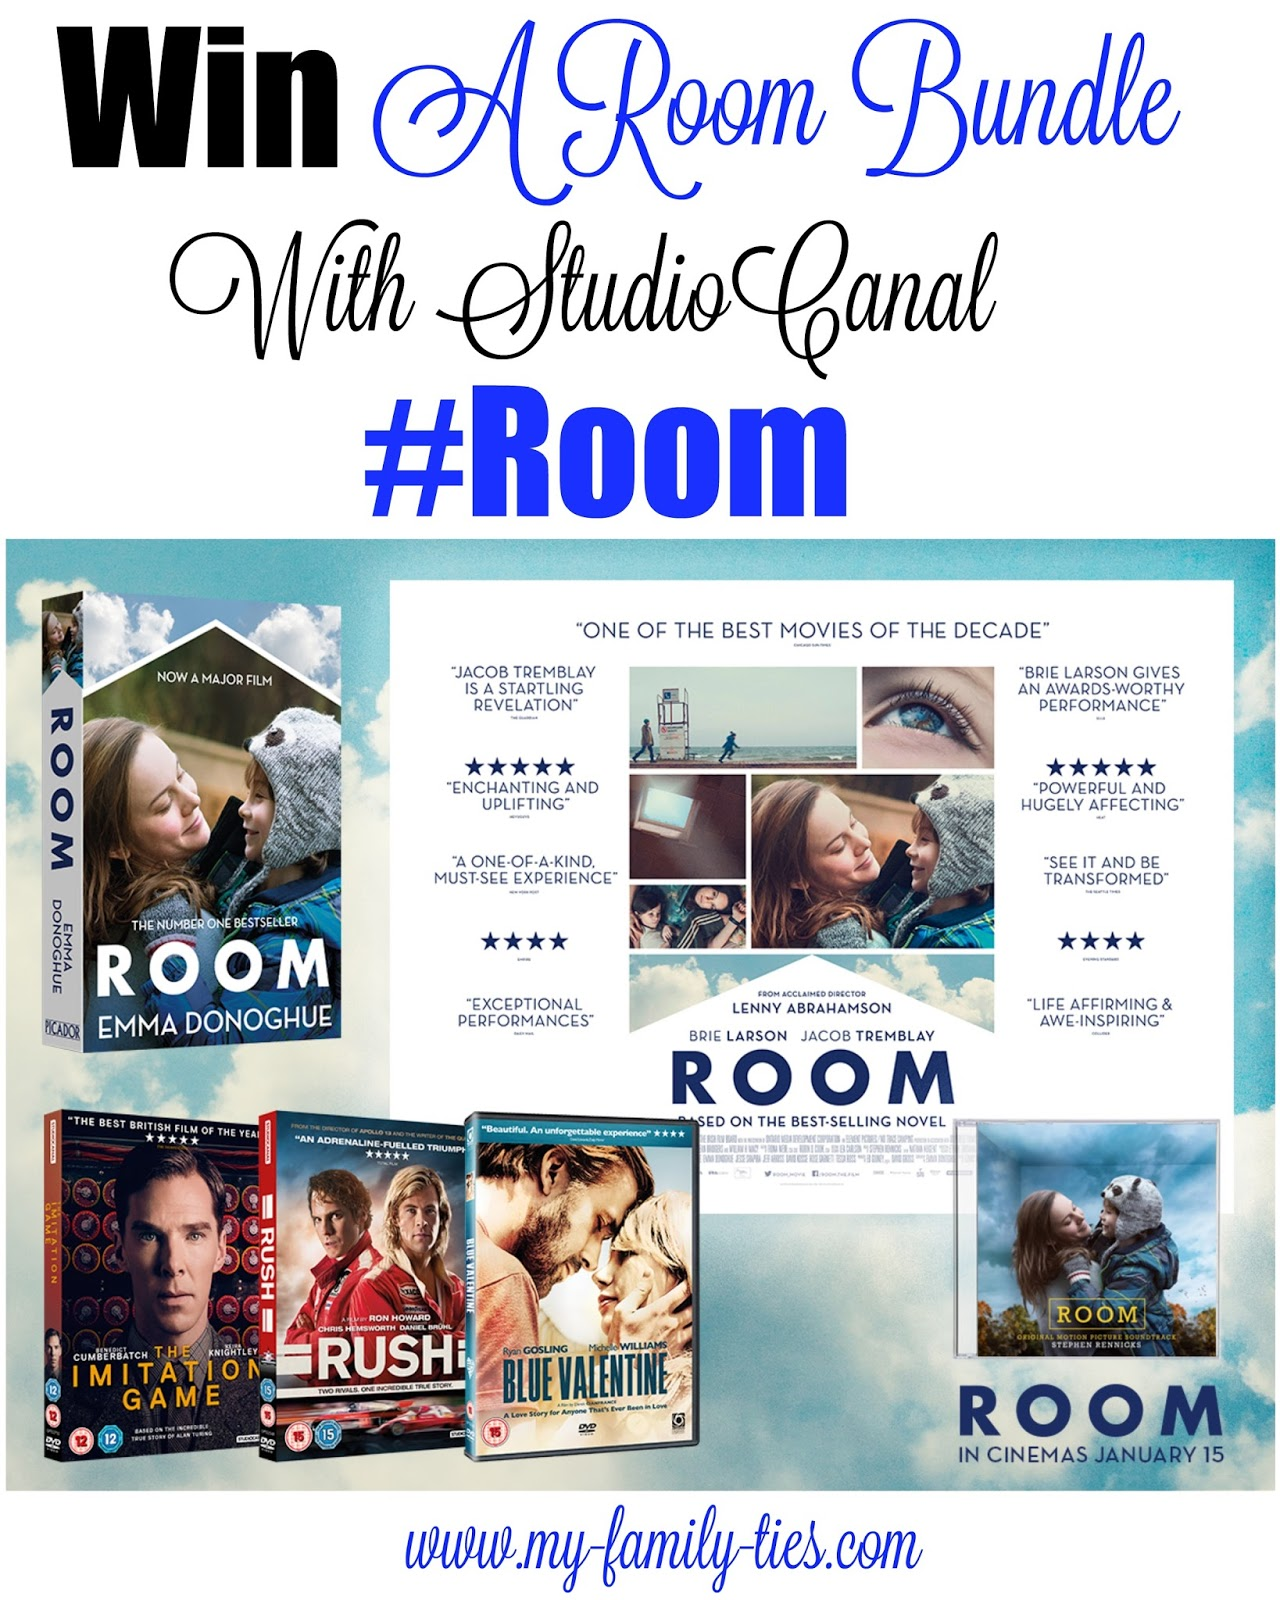 Giveaway Competition To Win Room By Emma Donoghue Merchandise From The Award Winning Movie Released January 2015, Competition with StudioCanal and My Family Ties Blog